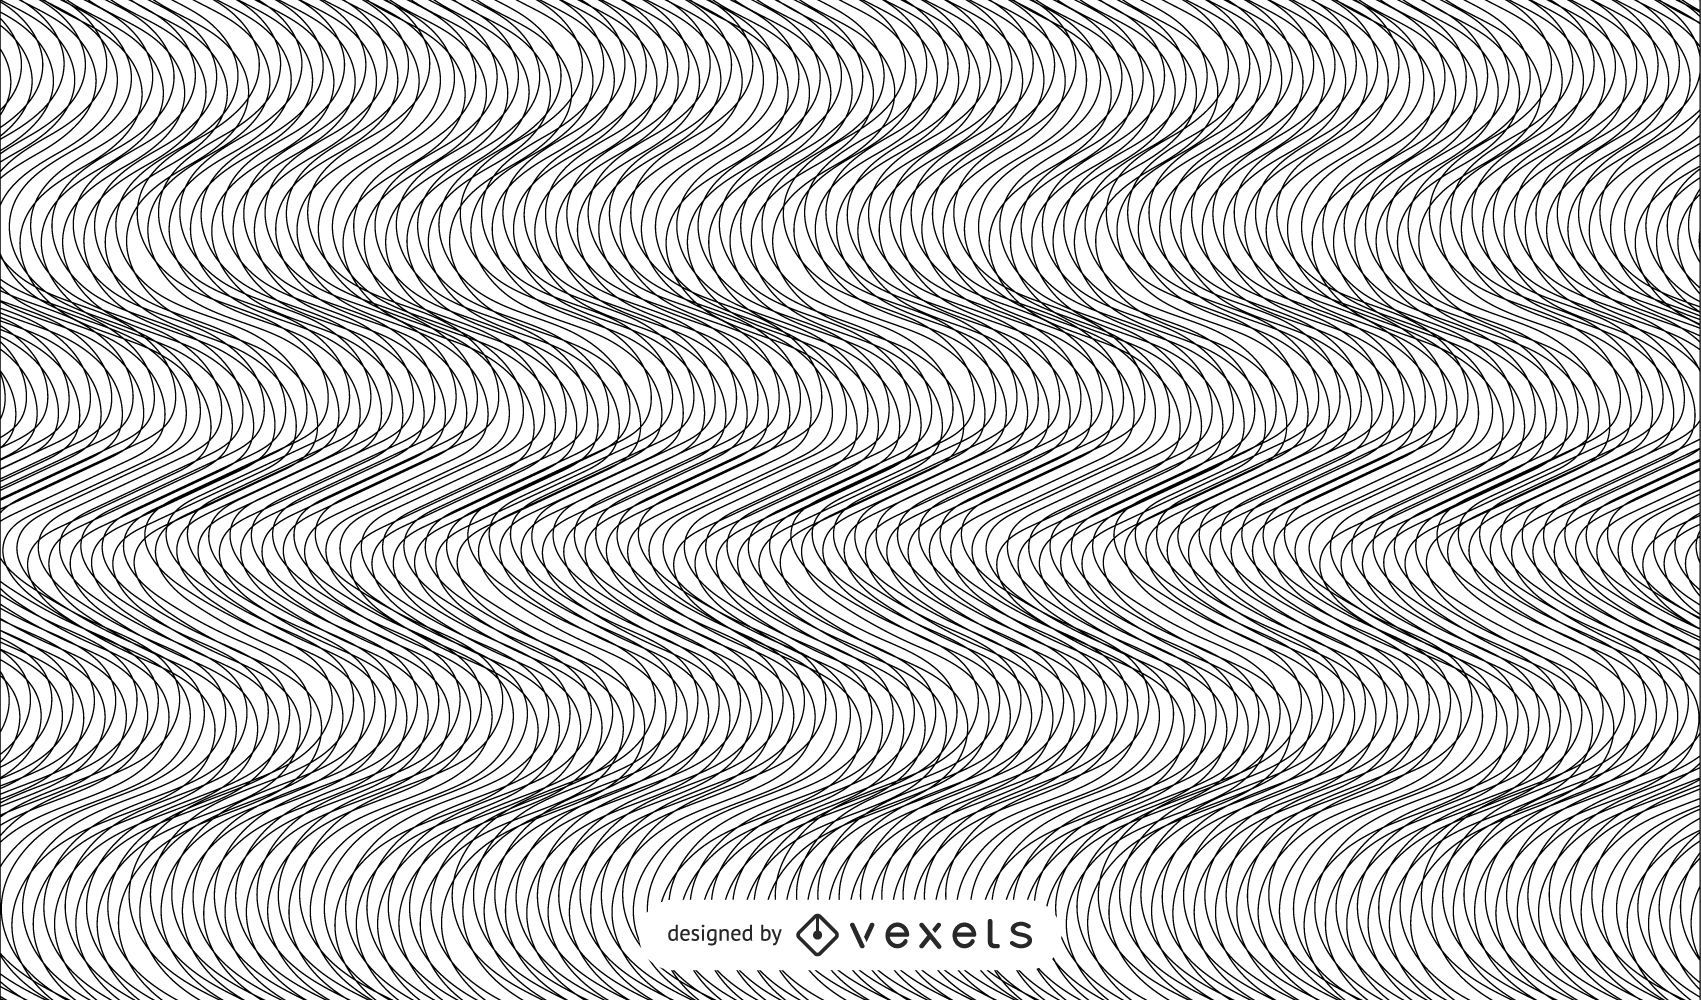 Moire or Wave Pattern